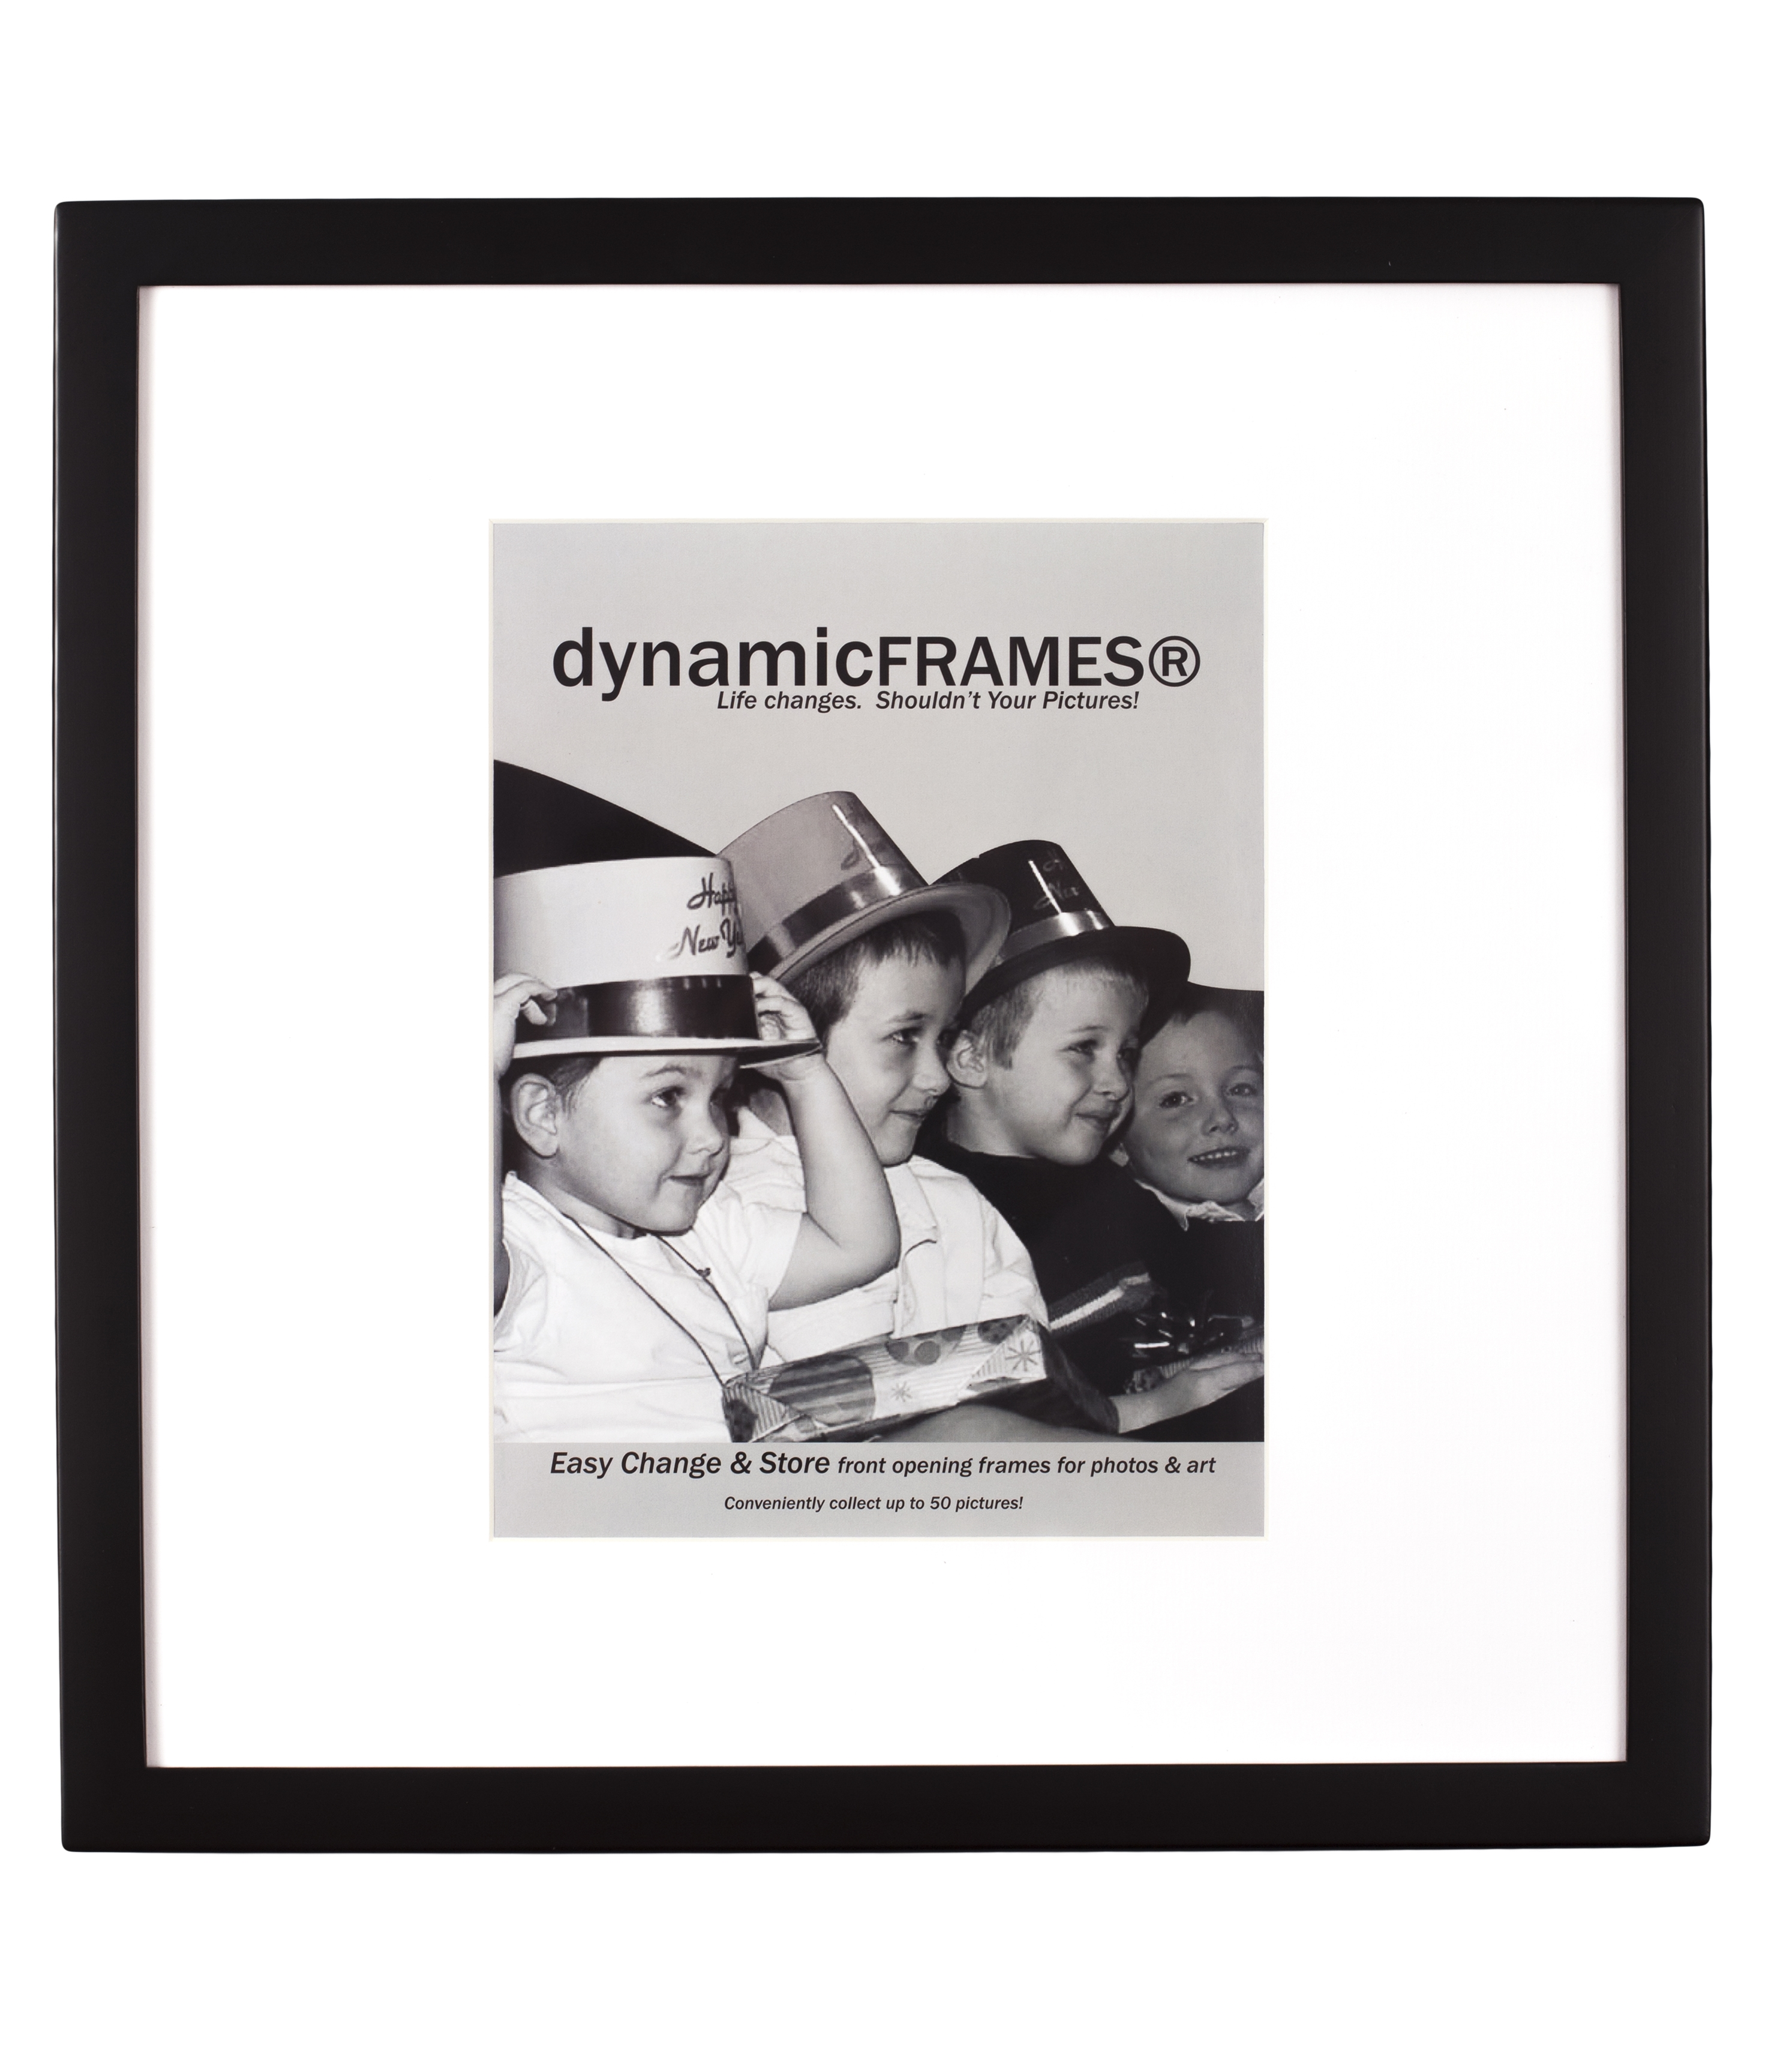 Print-N-Frame dynamicSquare for 8.5x11 prints or photos - DPNF-8511